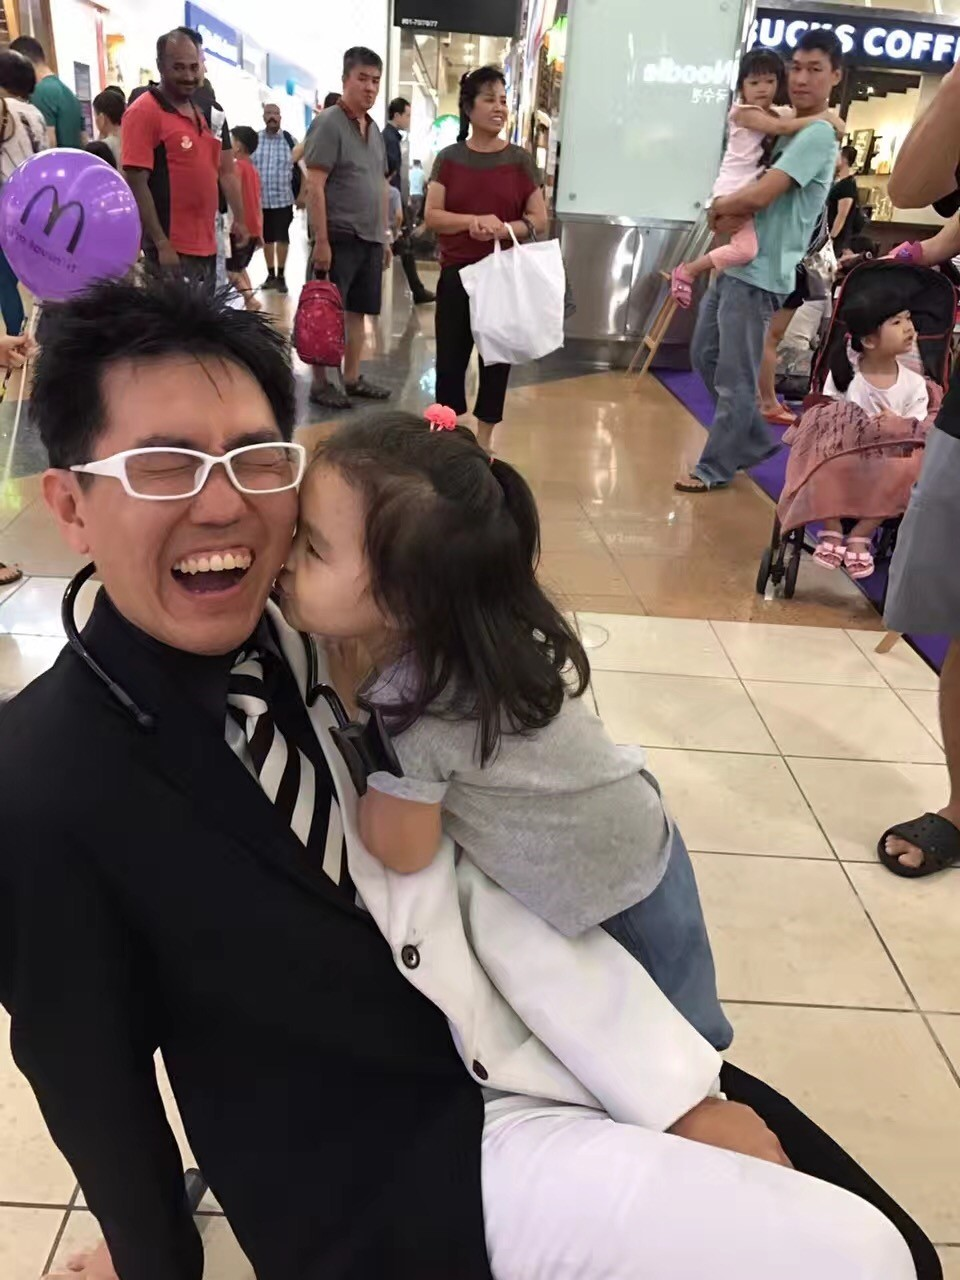 Mr bottle getting a kiss from an audience member after his show at the mall